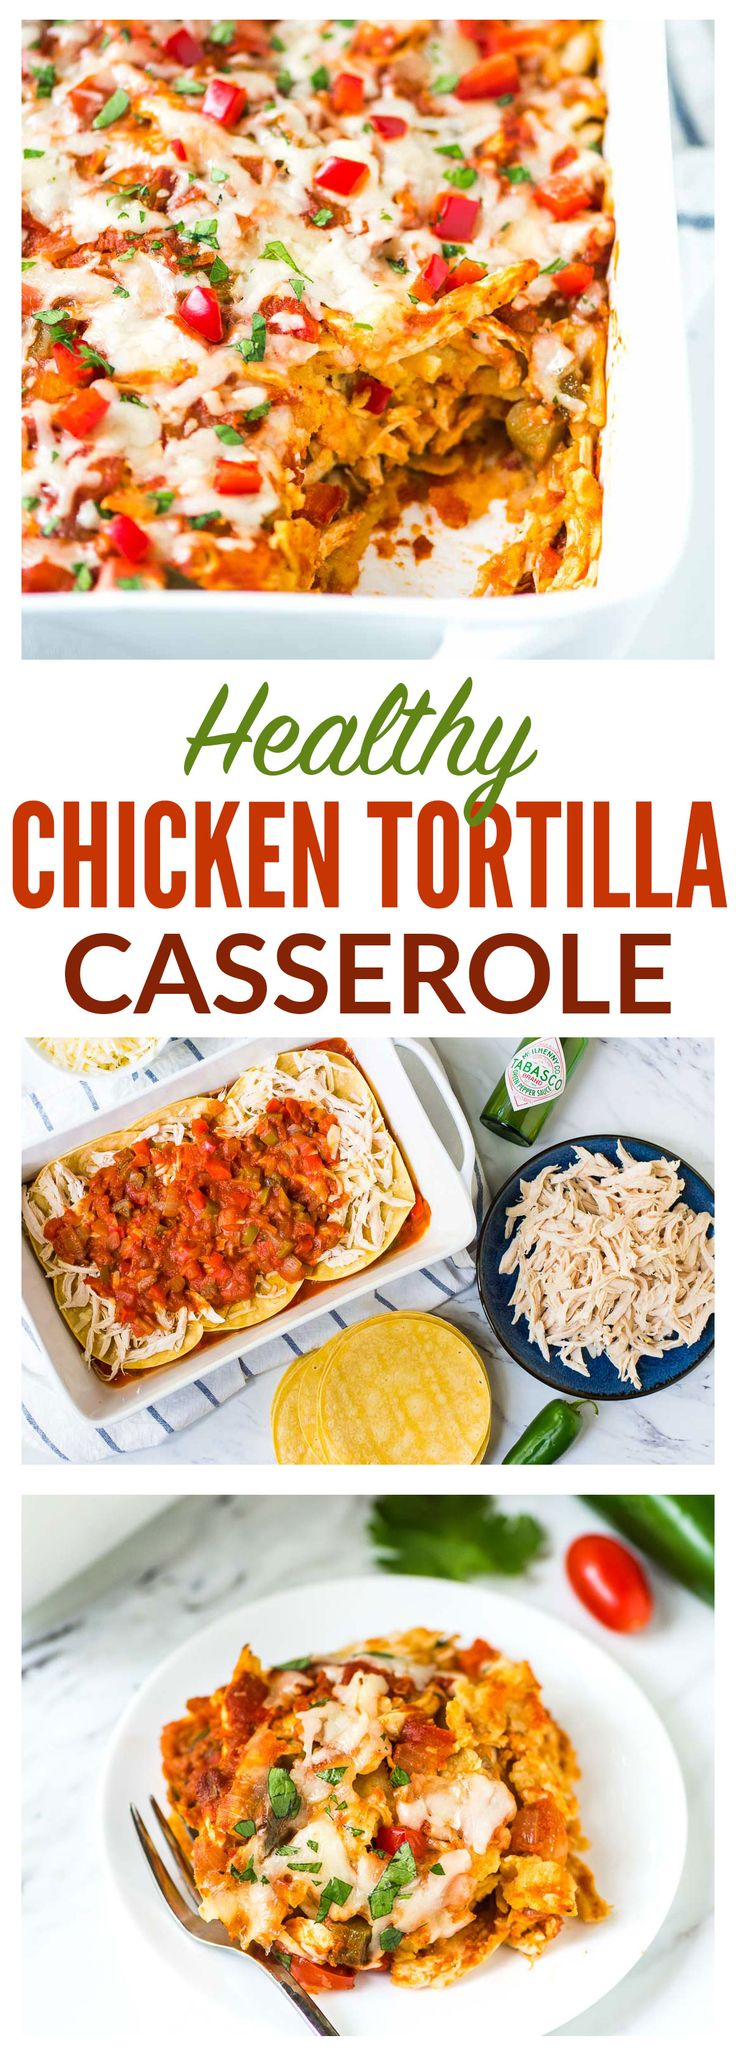 Easy Mexican Chicken Tortilla Casserole. Family favorite! Layers of cheese, chicken, and tortillas, baked in a southwest tomato sauce. Freezer-friendly and healthy! @wellplated (Bake Chicken Tortillas)